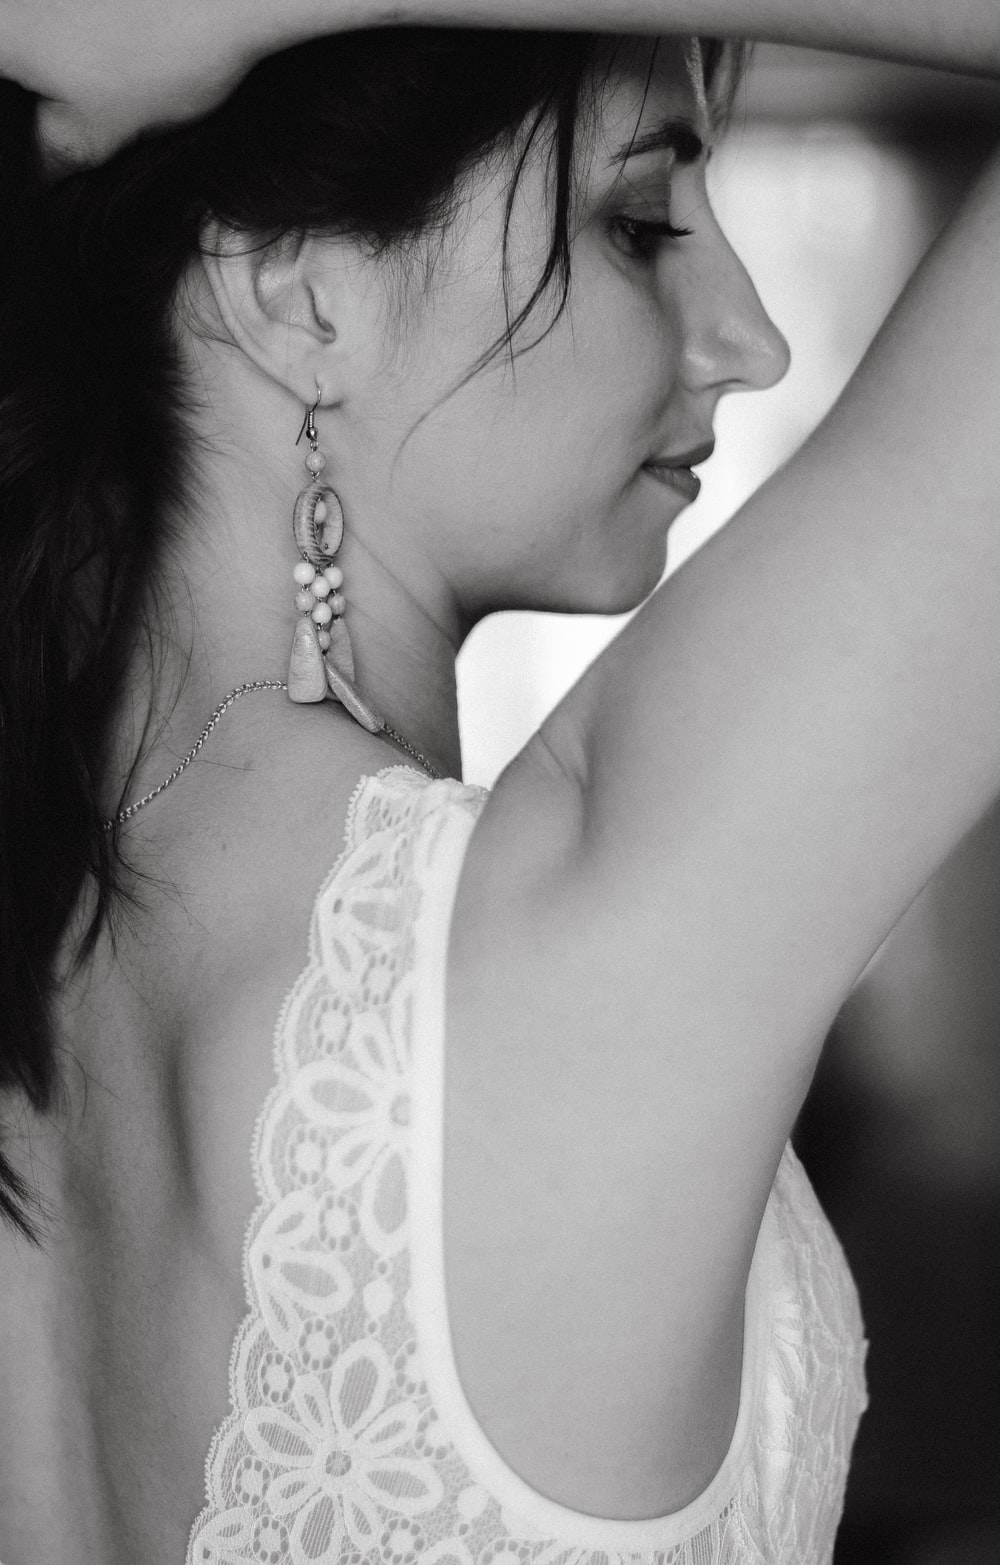 grayscale photography of woman wearing white top